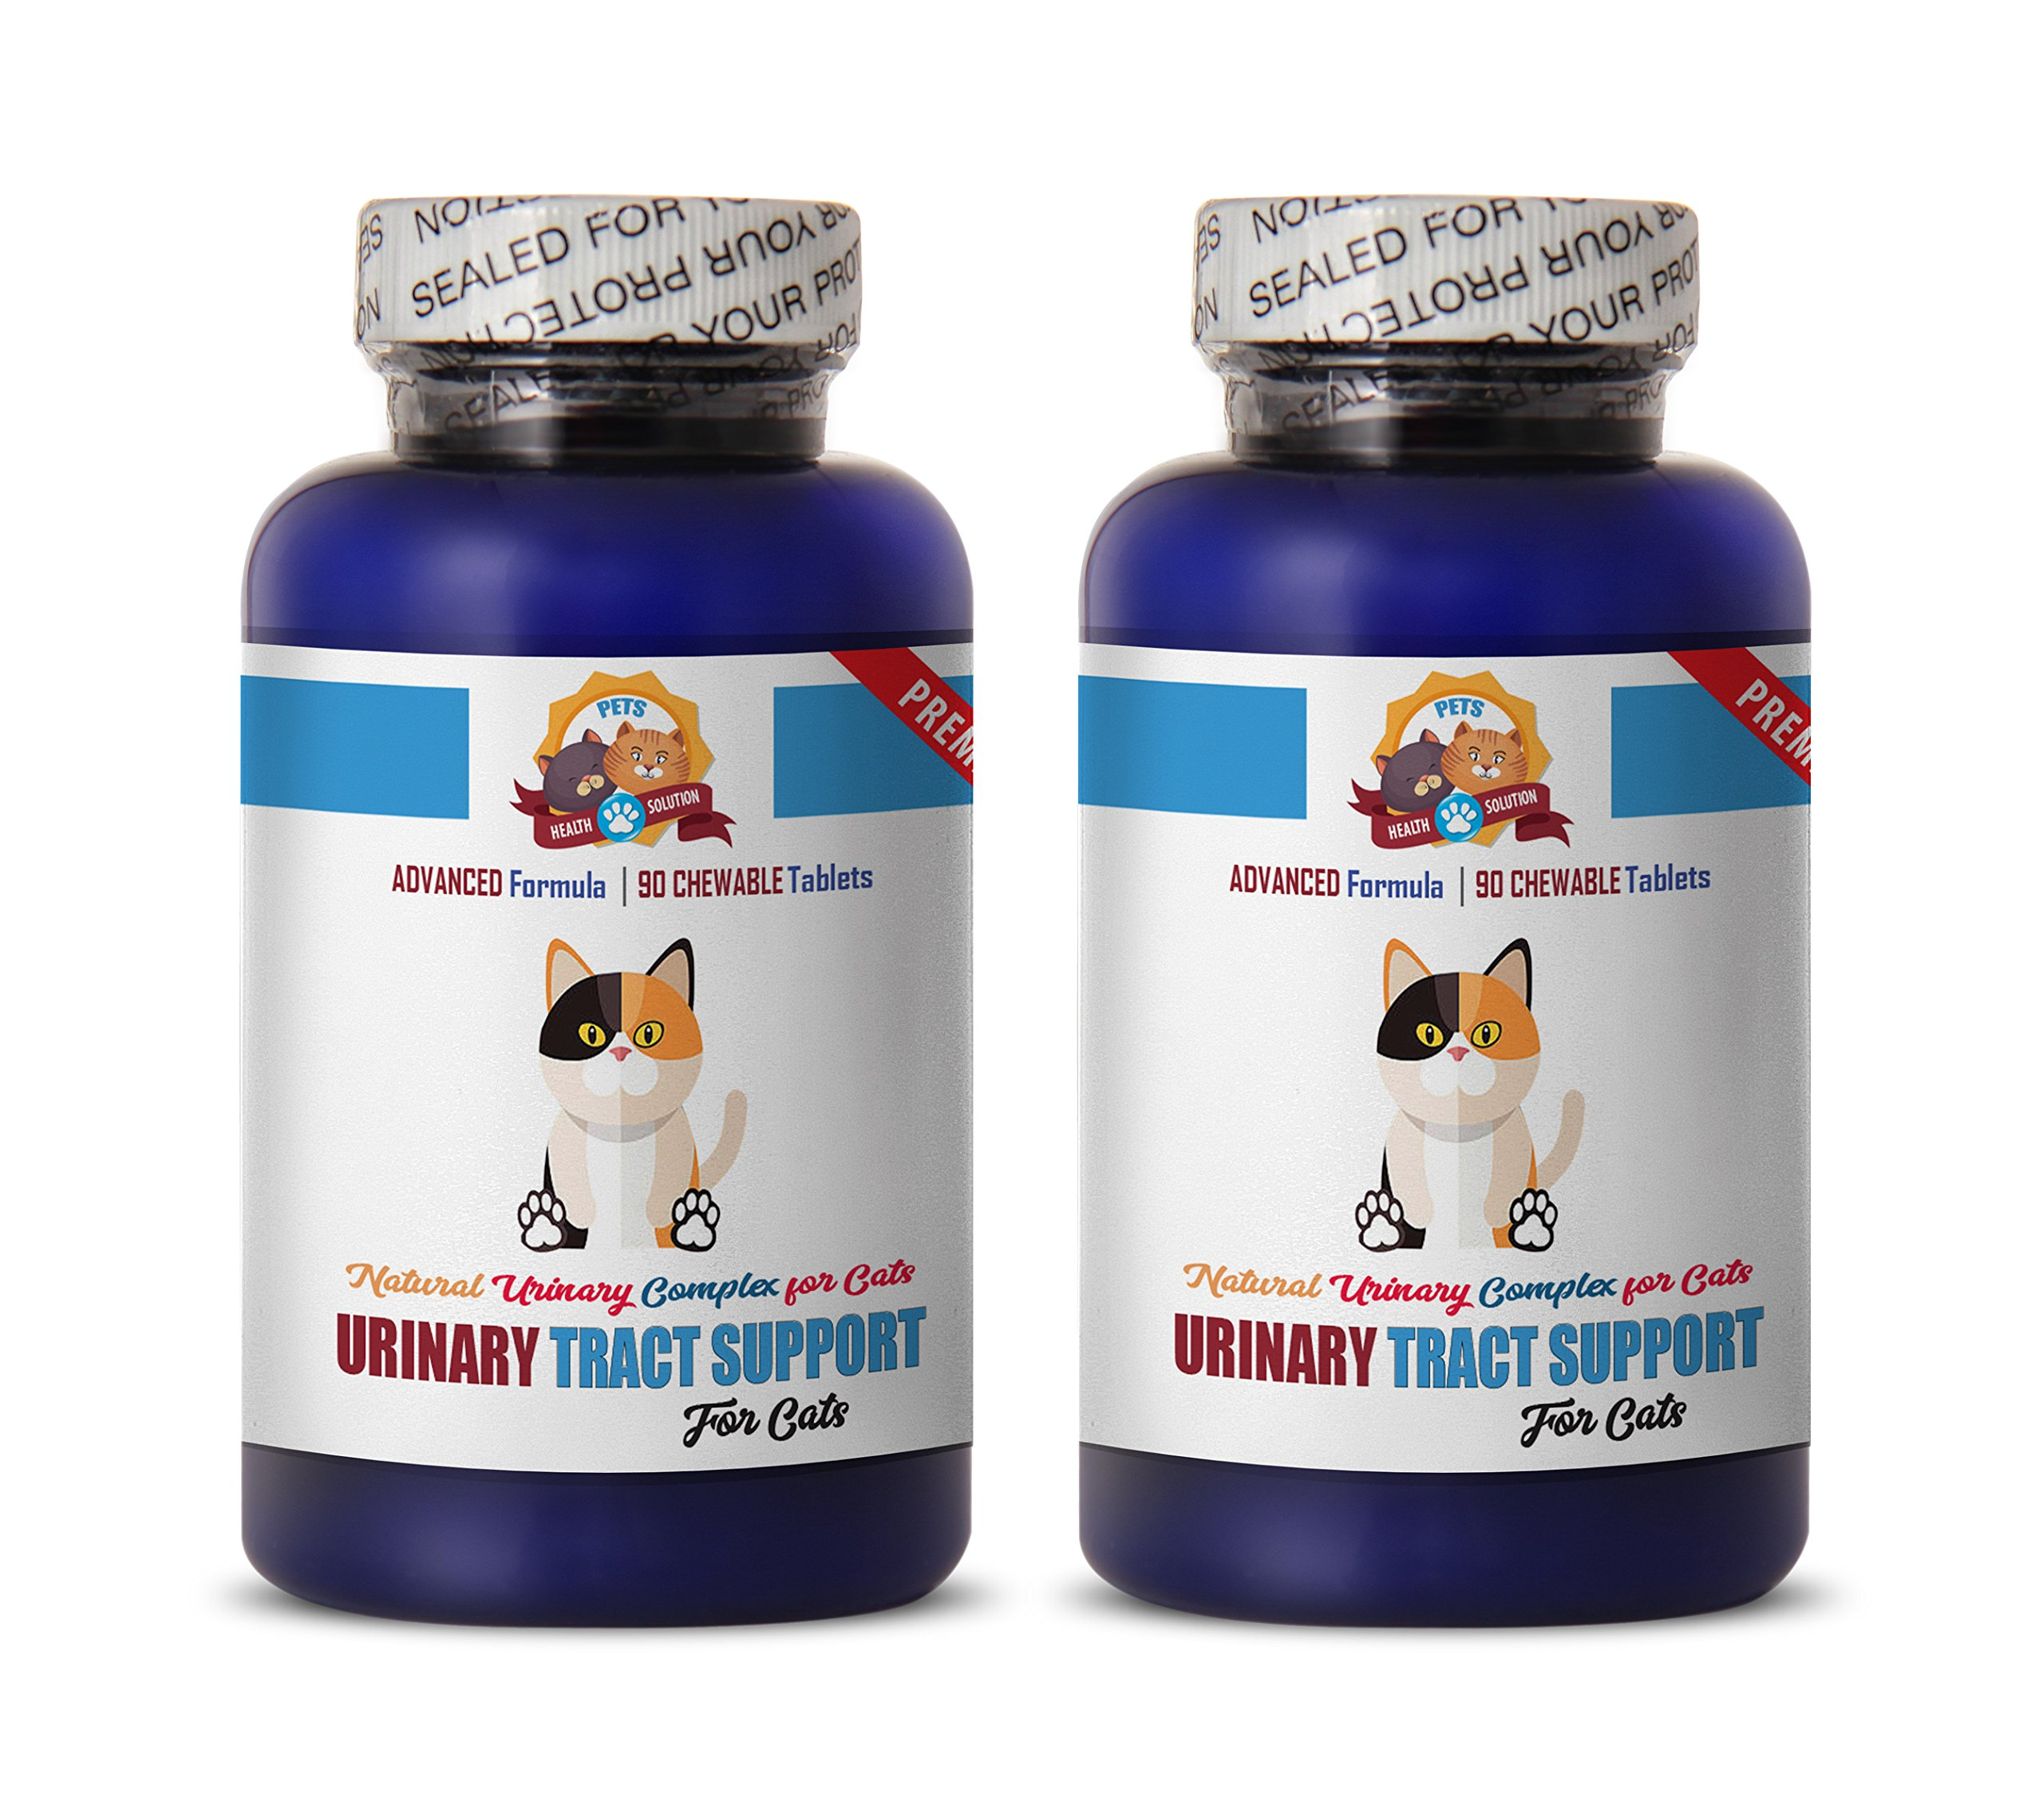 PETS HEALTH SOLUTION urinary treats for cats - PREMIUM URINARY TRACT SUPPORT - CAT TREATS - NATURAL AND HEALTHY - cranberry supplements for cats - 270 Treats (3 Bottle) by PETS HEALTH SOLUTION